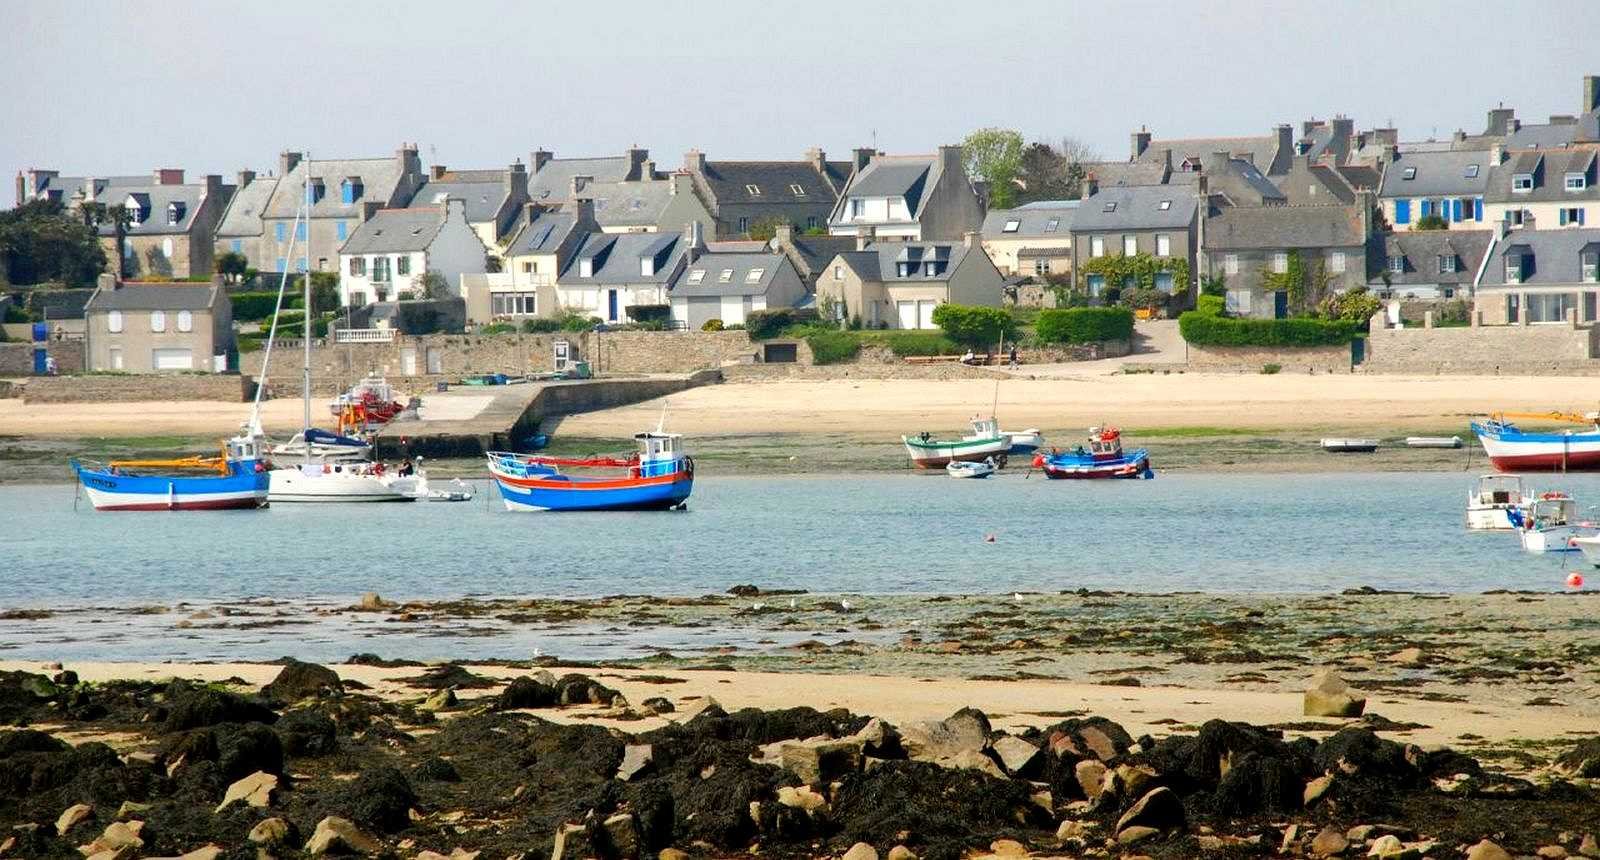 Image : Office de Tourisme** de Roscoff